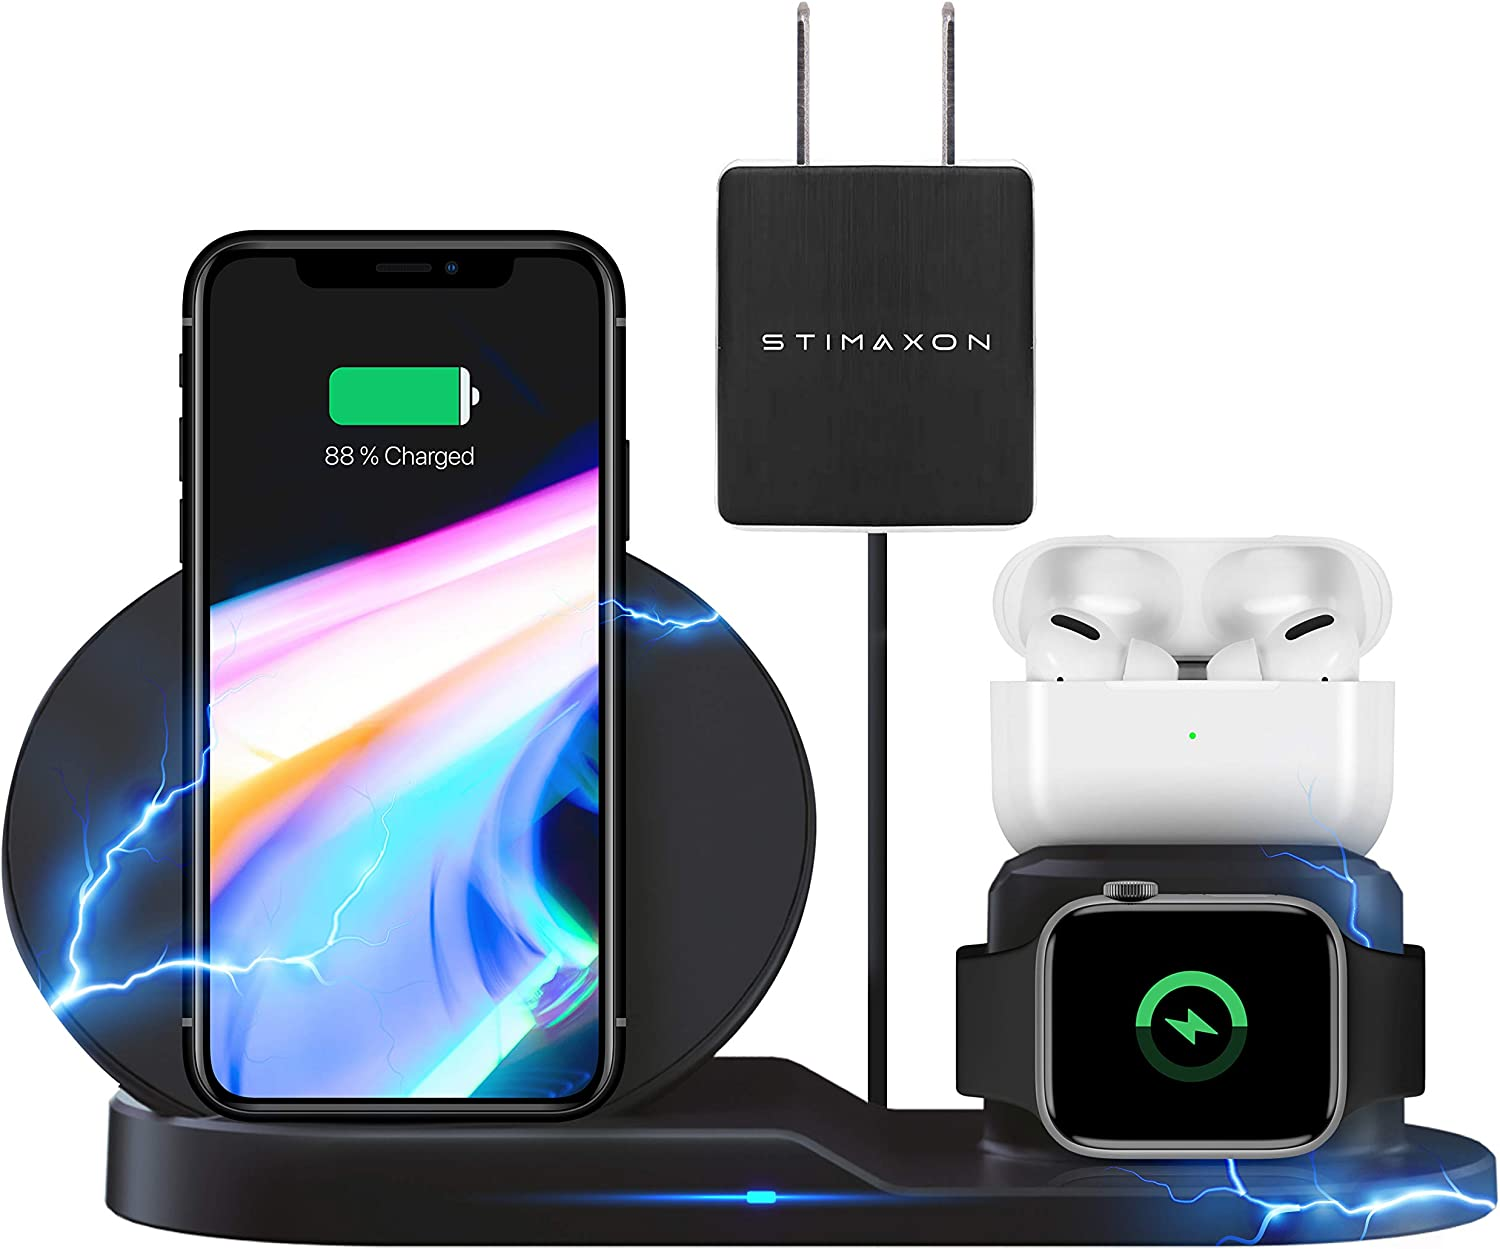 STIMAXON Wireless Charger Station, 3 in 1 Qi-Certified Fast Multi Charging Dock Stand Accessories Compatible with iPhone 11 Pro XS XR X iWatch SE 6 5 4 3 2 1 Galaxy S20 S10 S9 S8 Note